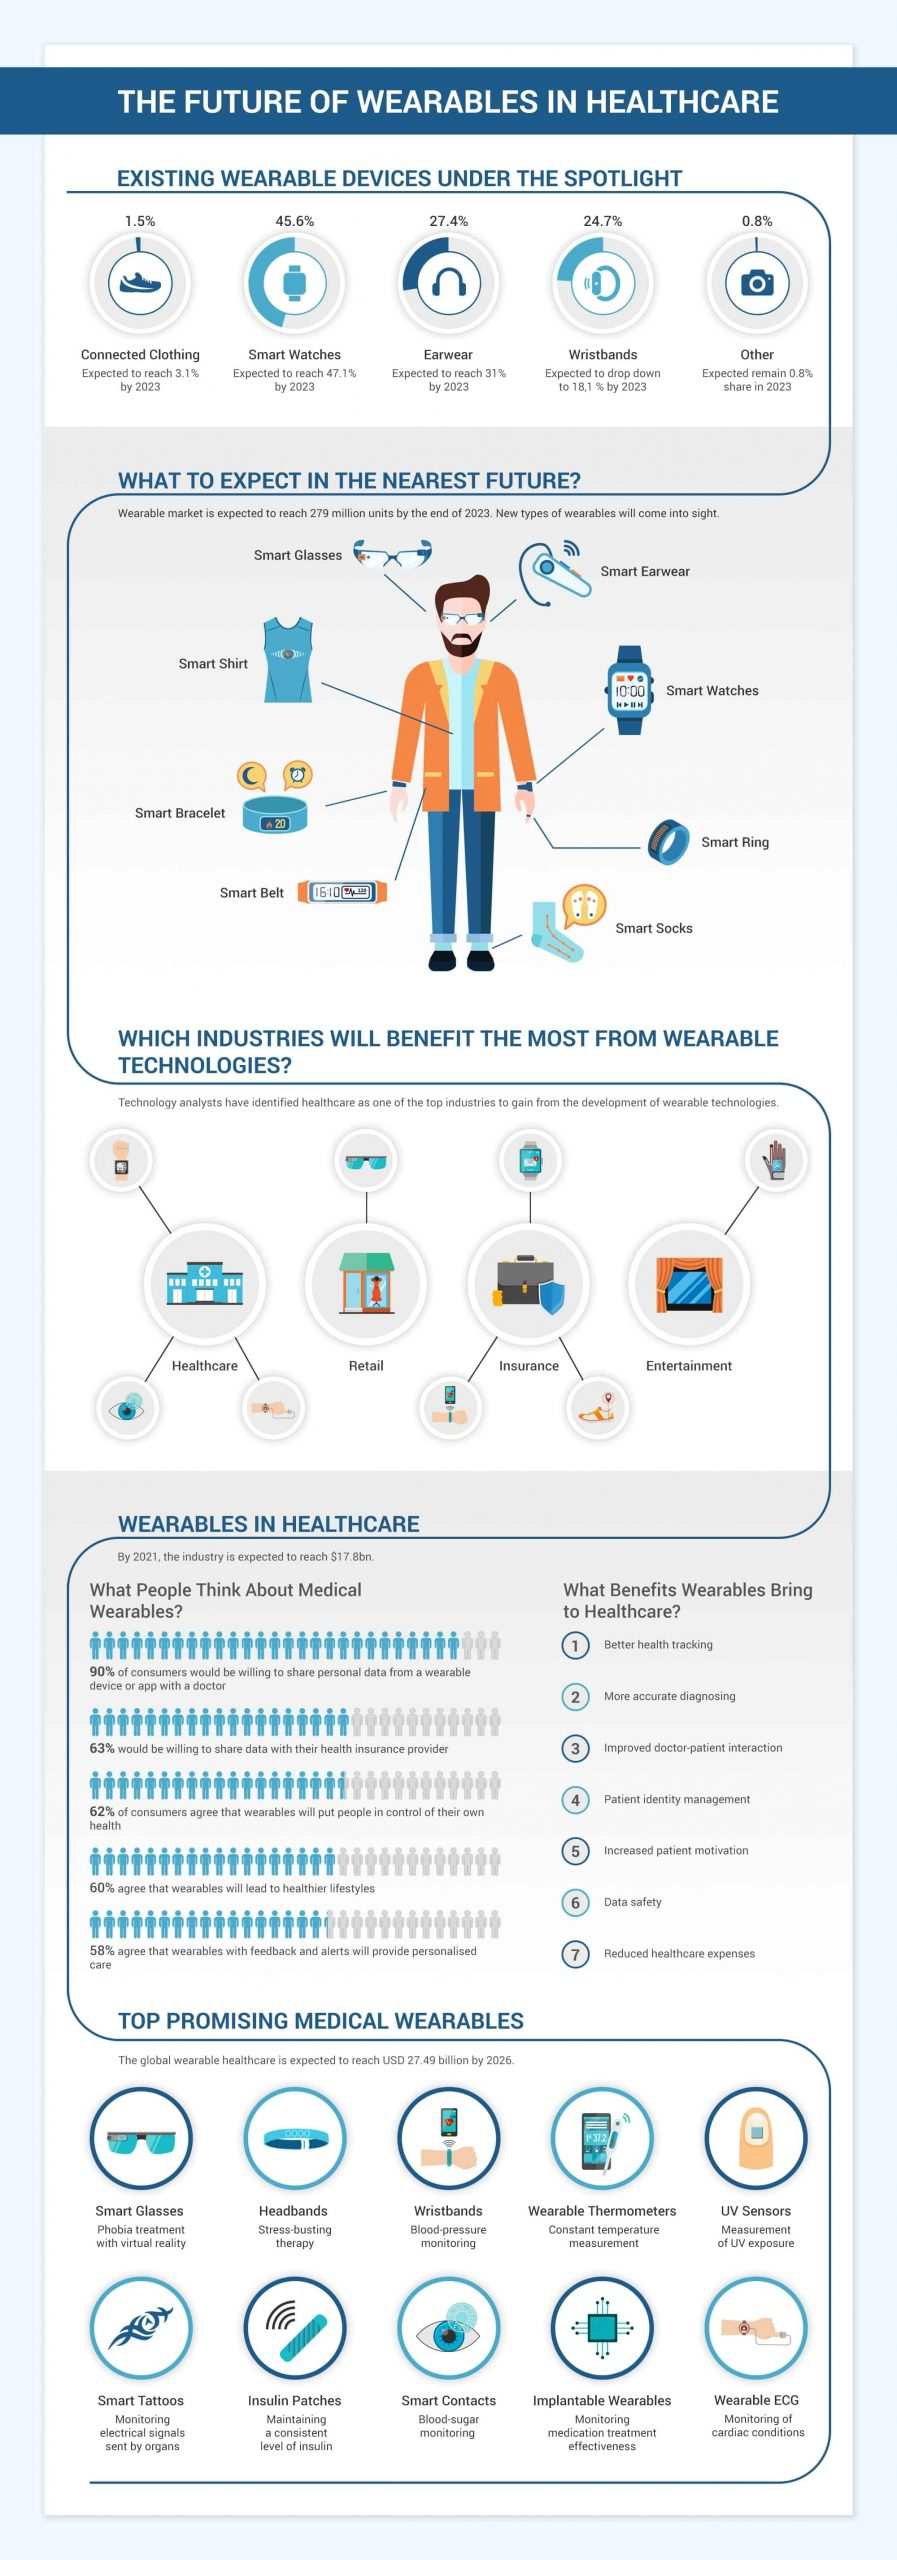 The future of wearables in Healthcare